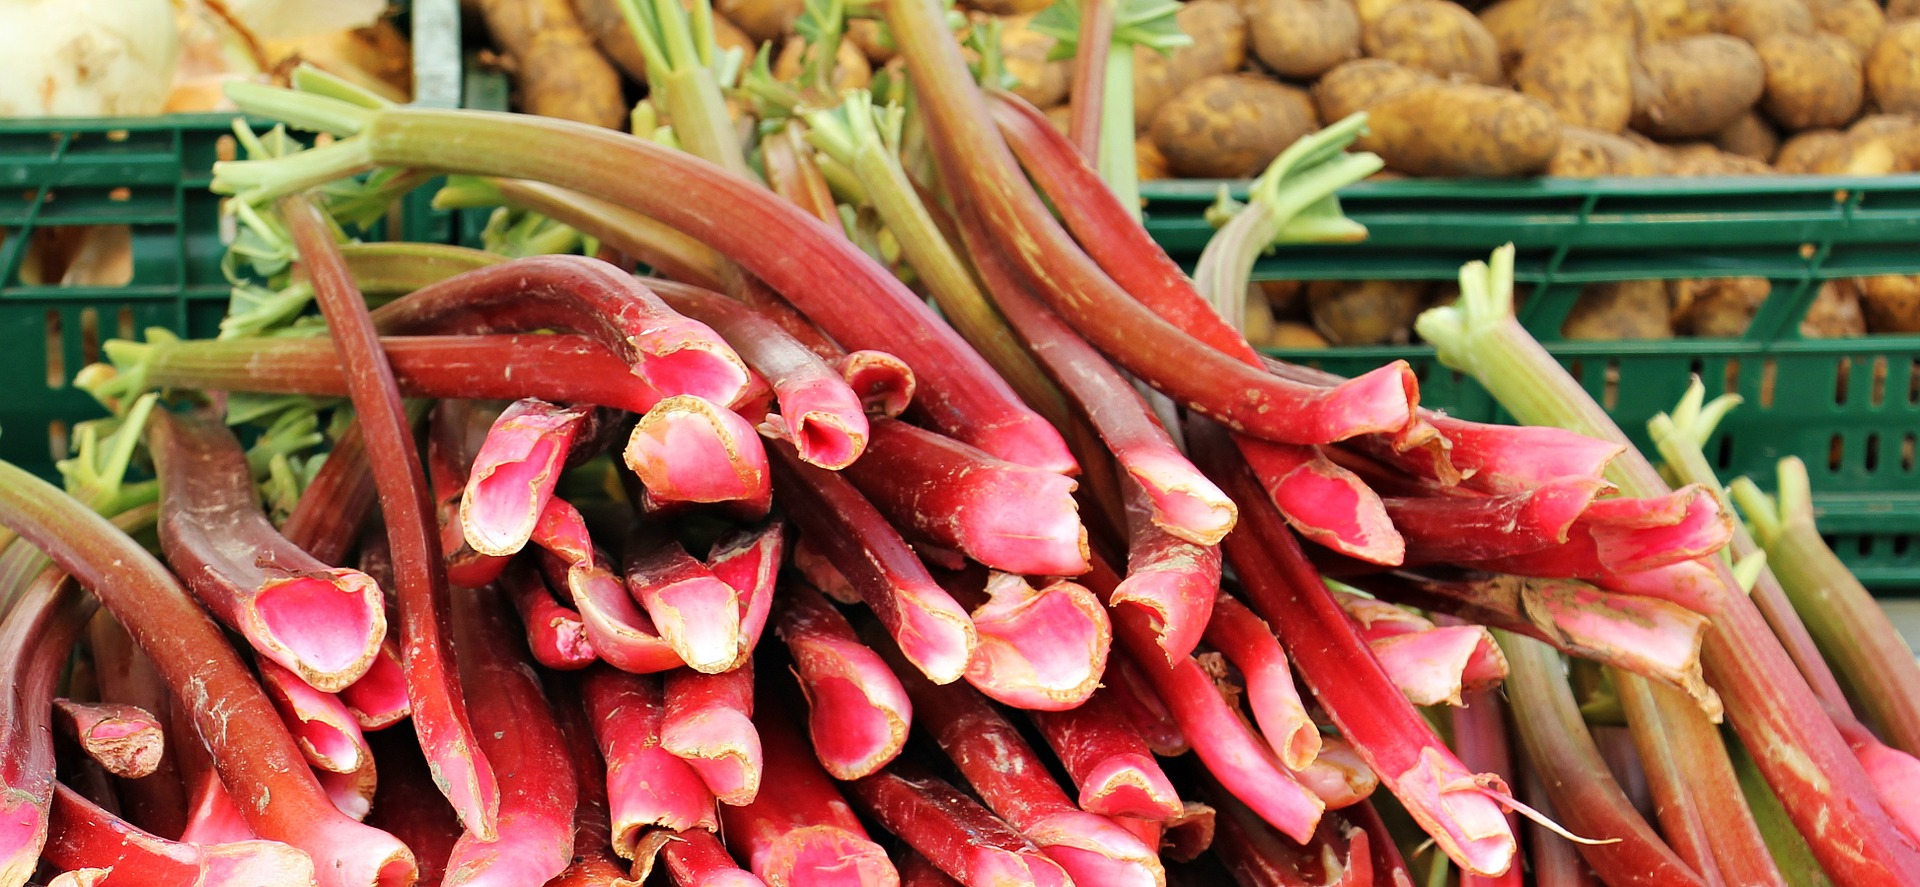 Rhubarb for Cooking into Sweet and Savory Recipes